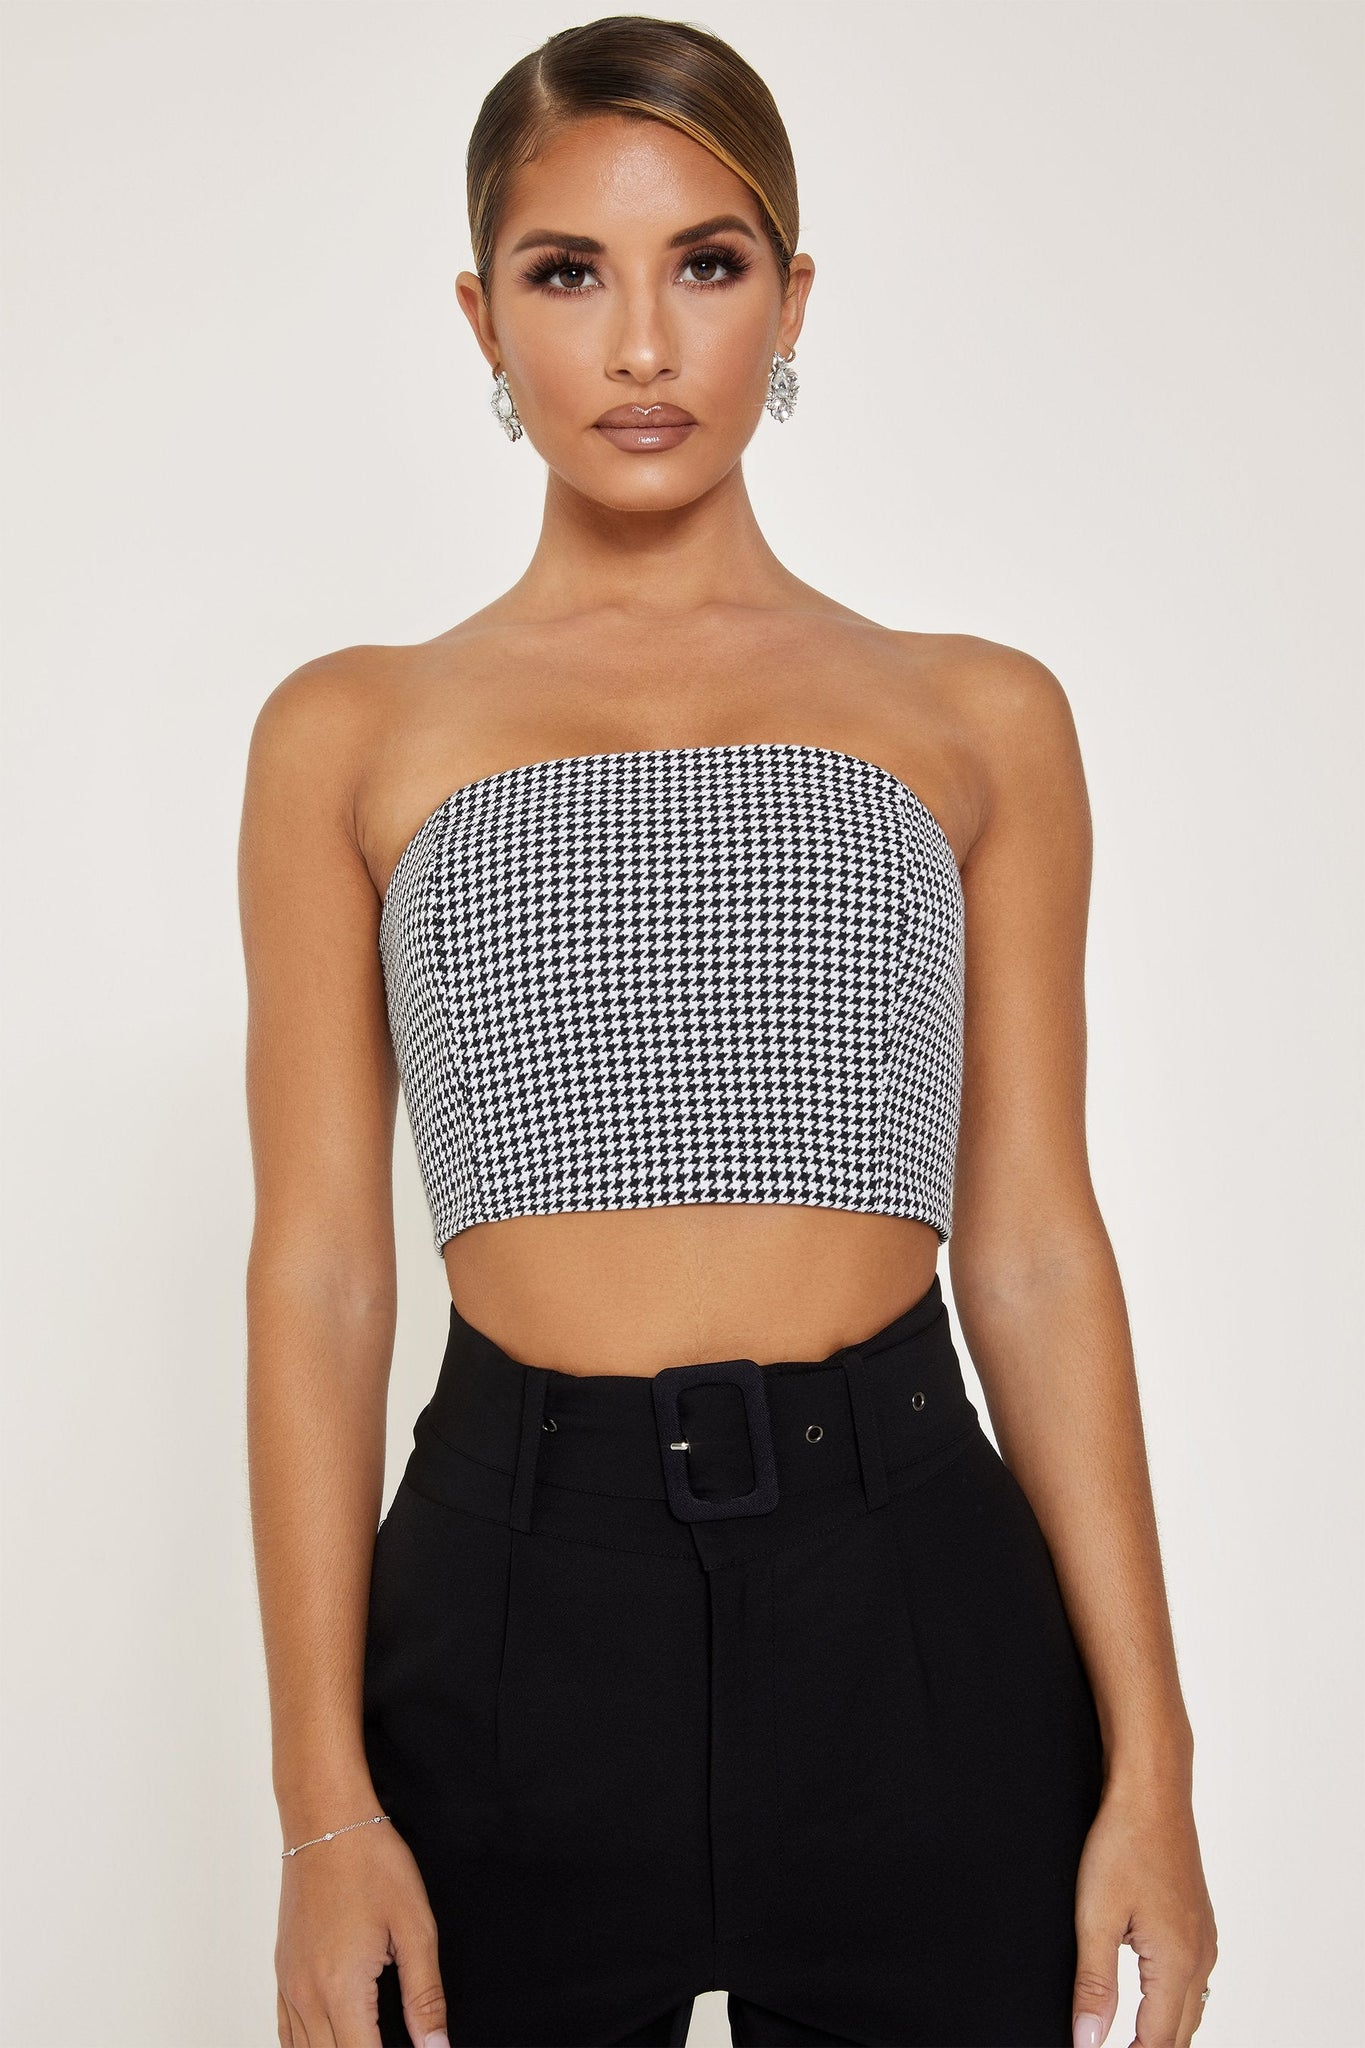 Kessa Boned Strapless Top - Houndstooth - MESHKI